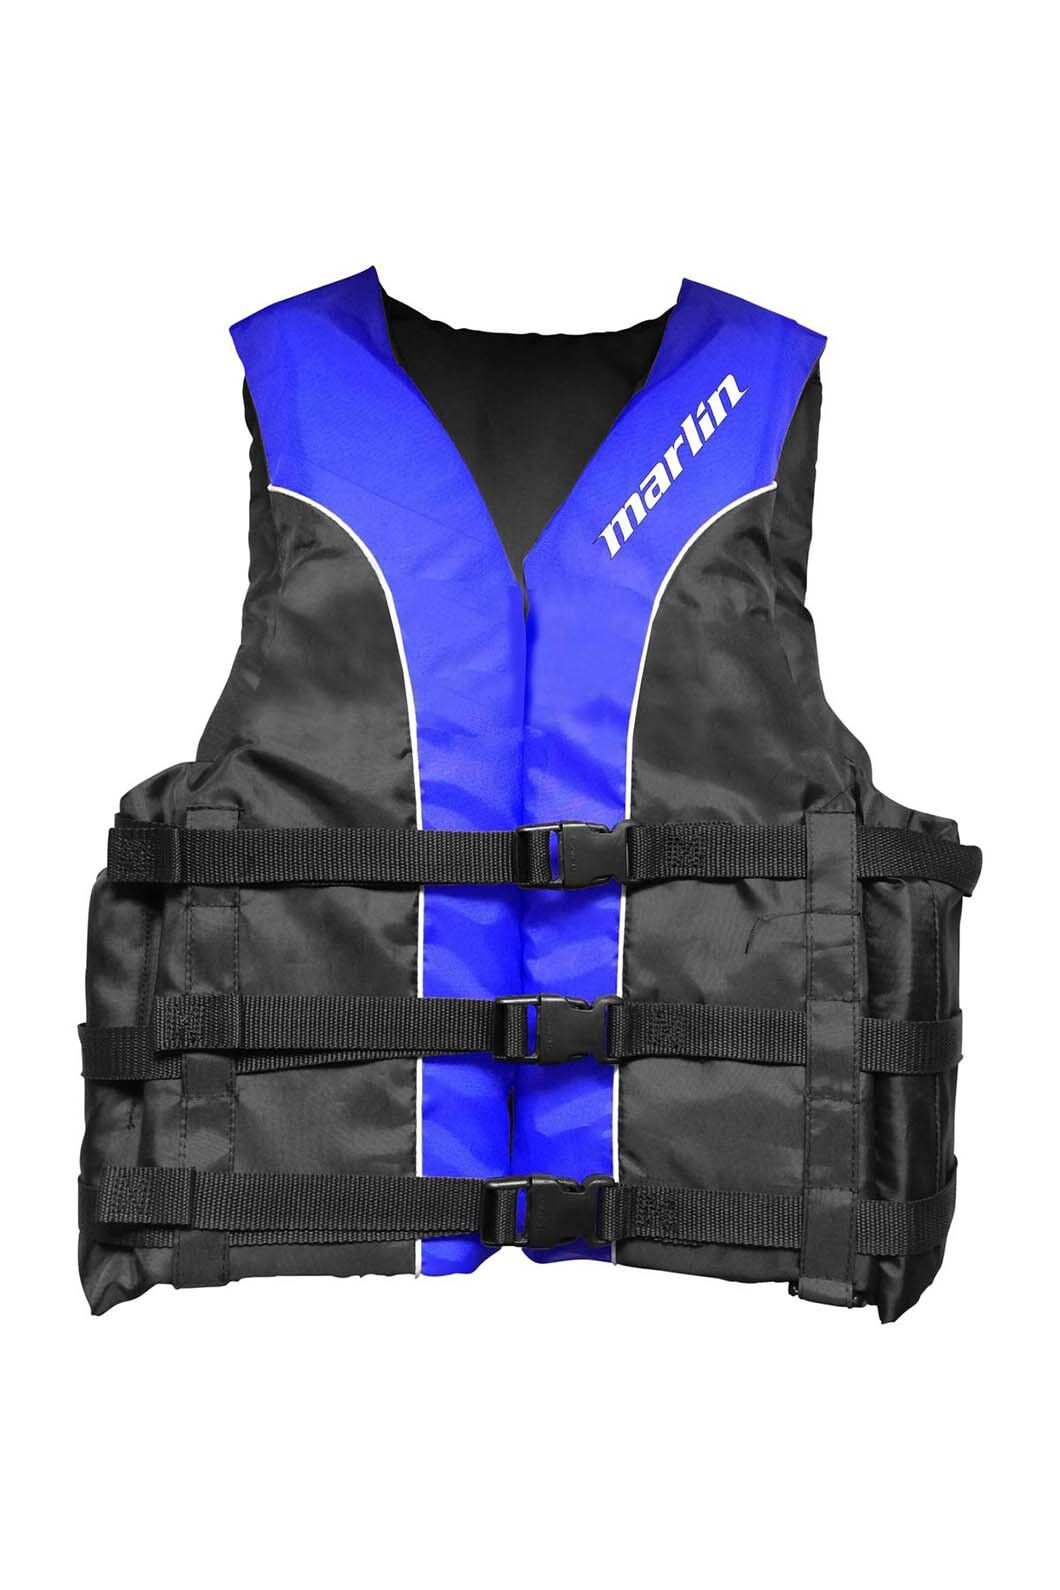 Marlin Australia Child Dominator S PFD 50 S, None, hi-res